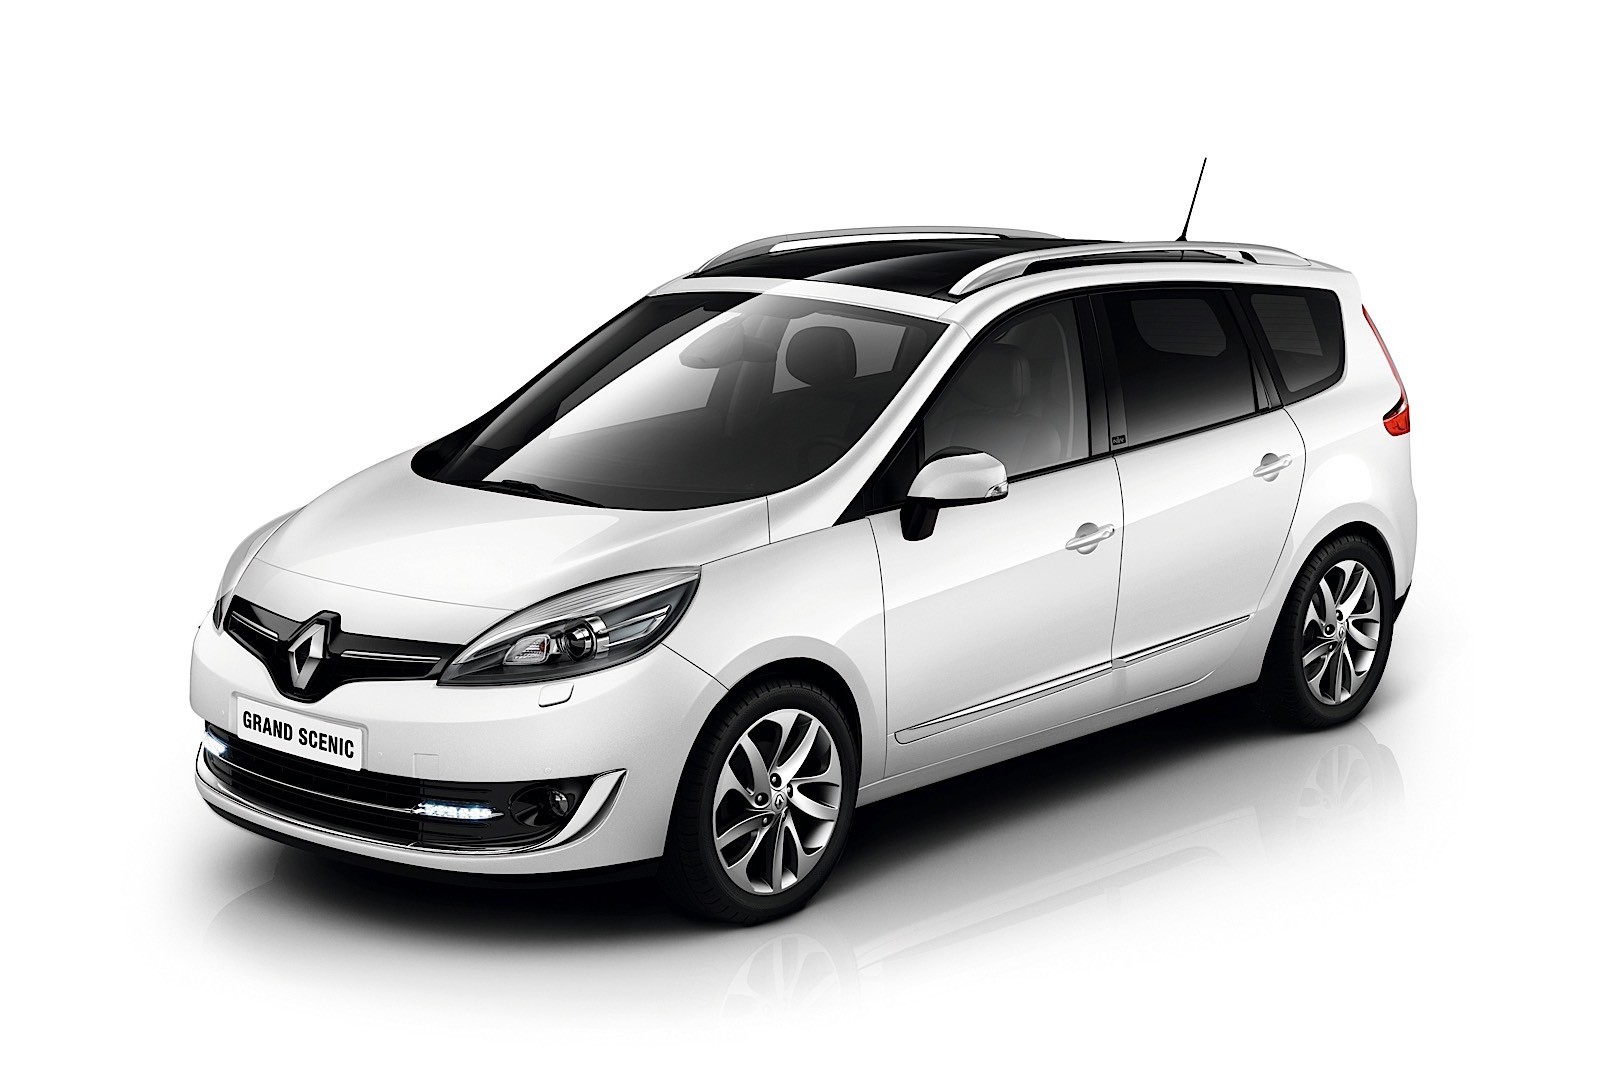 renault grand scenic specs photos 2013 2014 2015 2016 2017 2018 2019 autoevolution. Black Bedroom Furniture Sets. Home Design Ideas